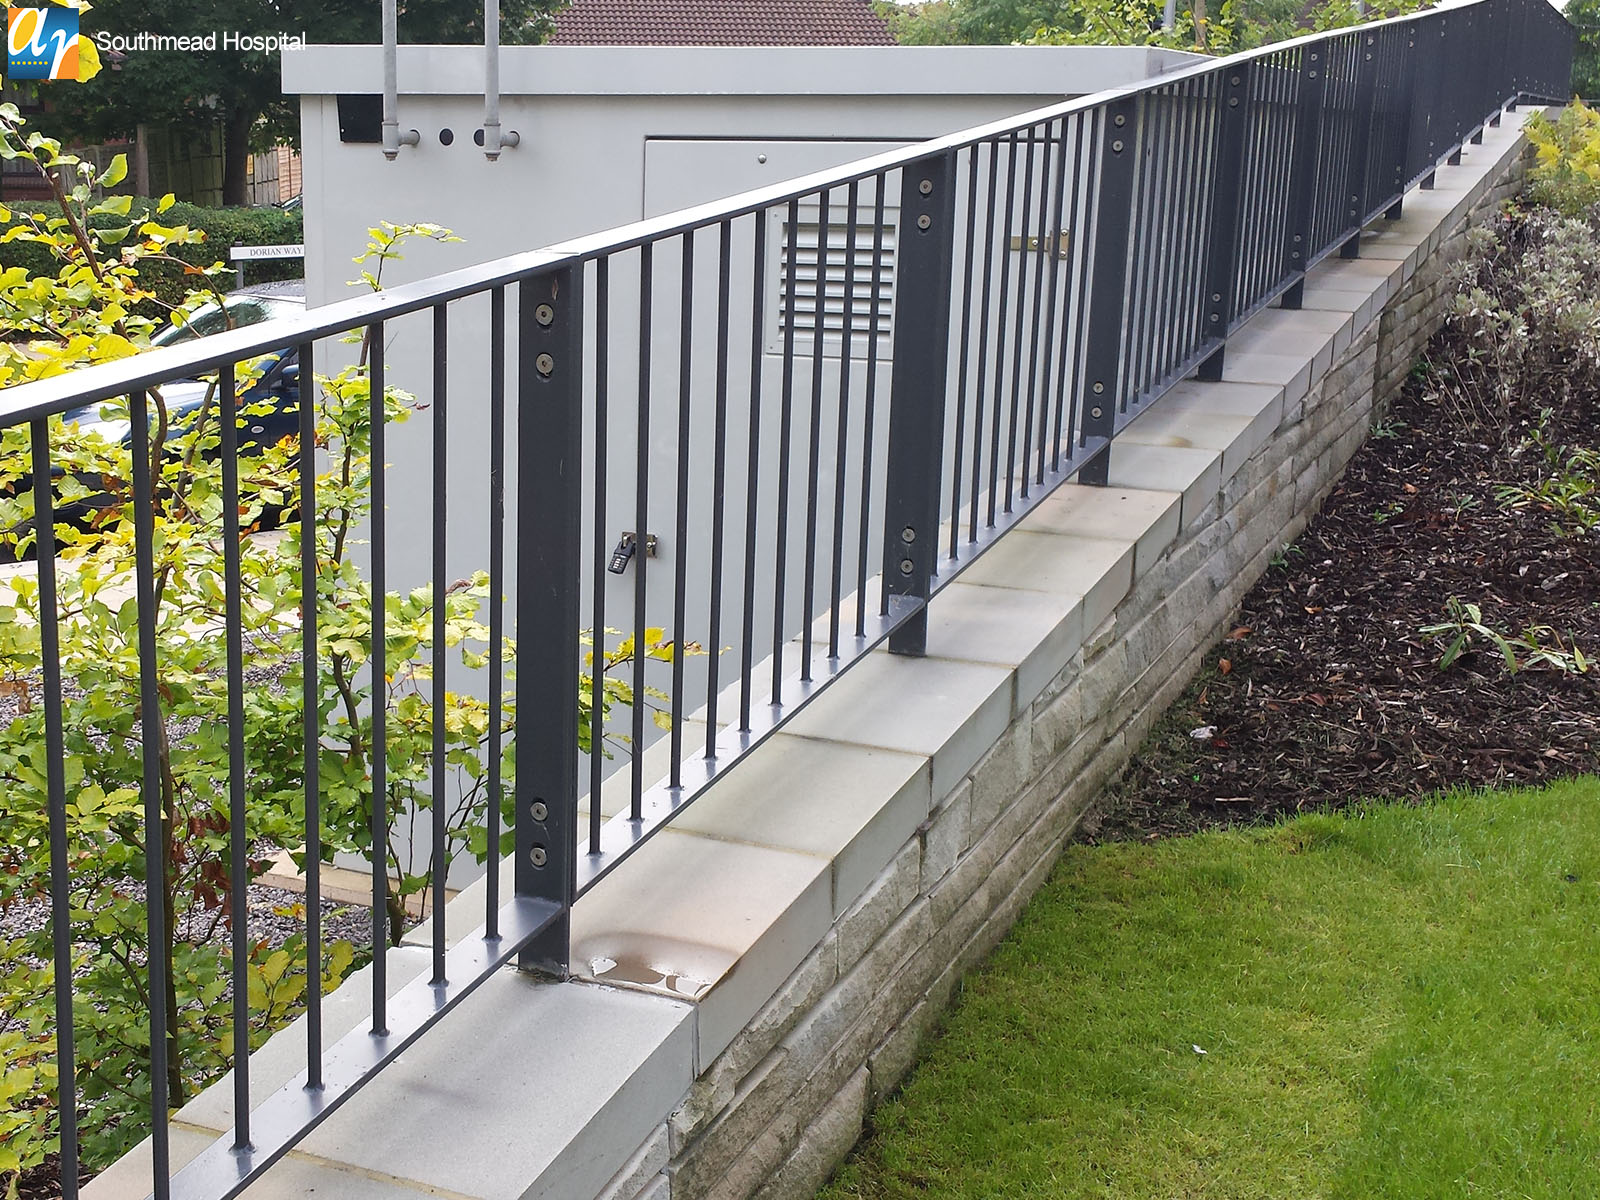 Southmead Hospital flat top metal railings